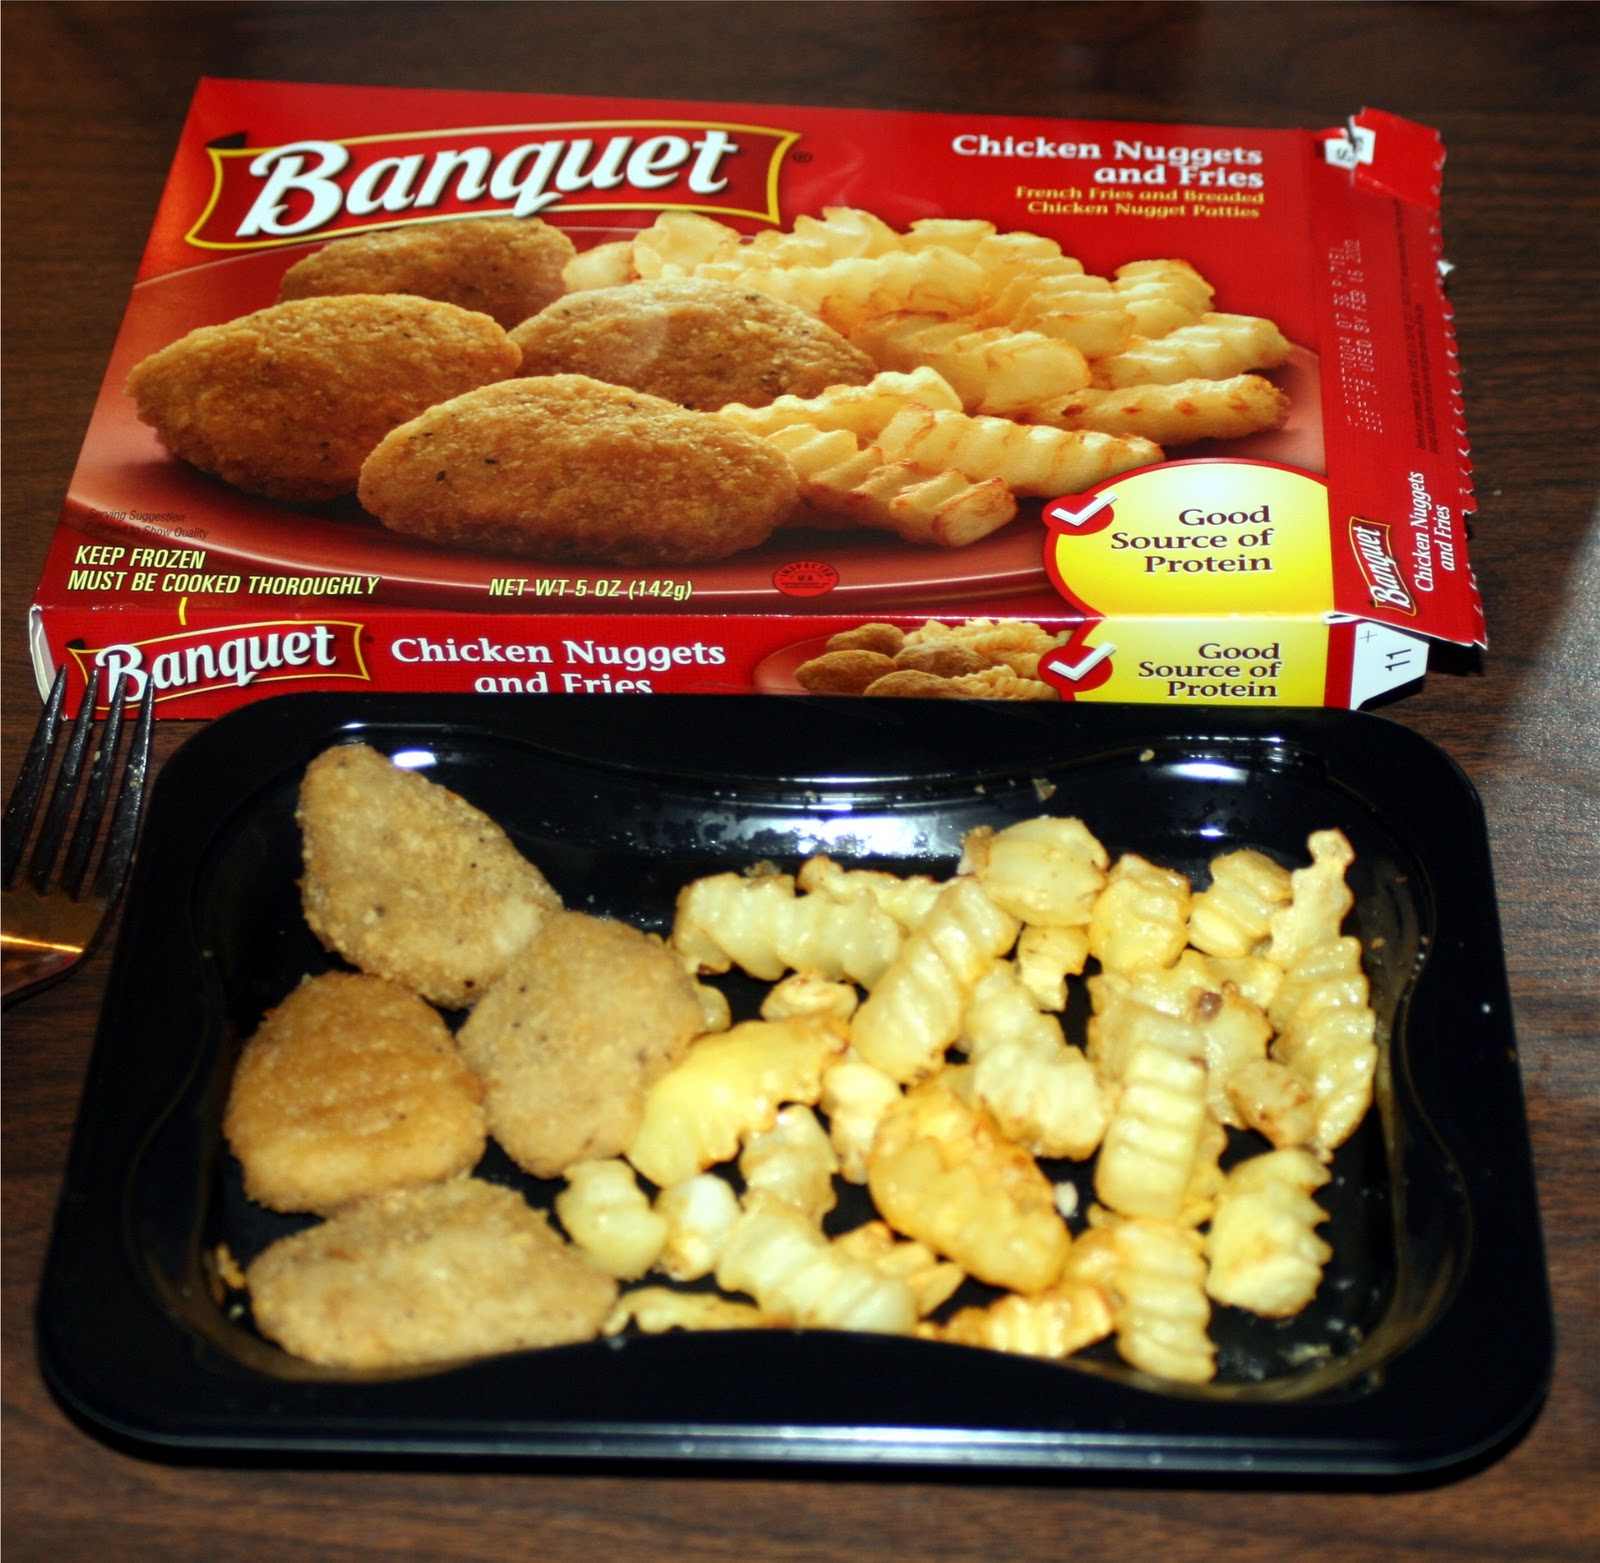 Chicken Nuggets: Forsythkid: A Critique Of Banquet's Chicken Nuggets And Fries